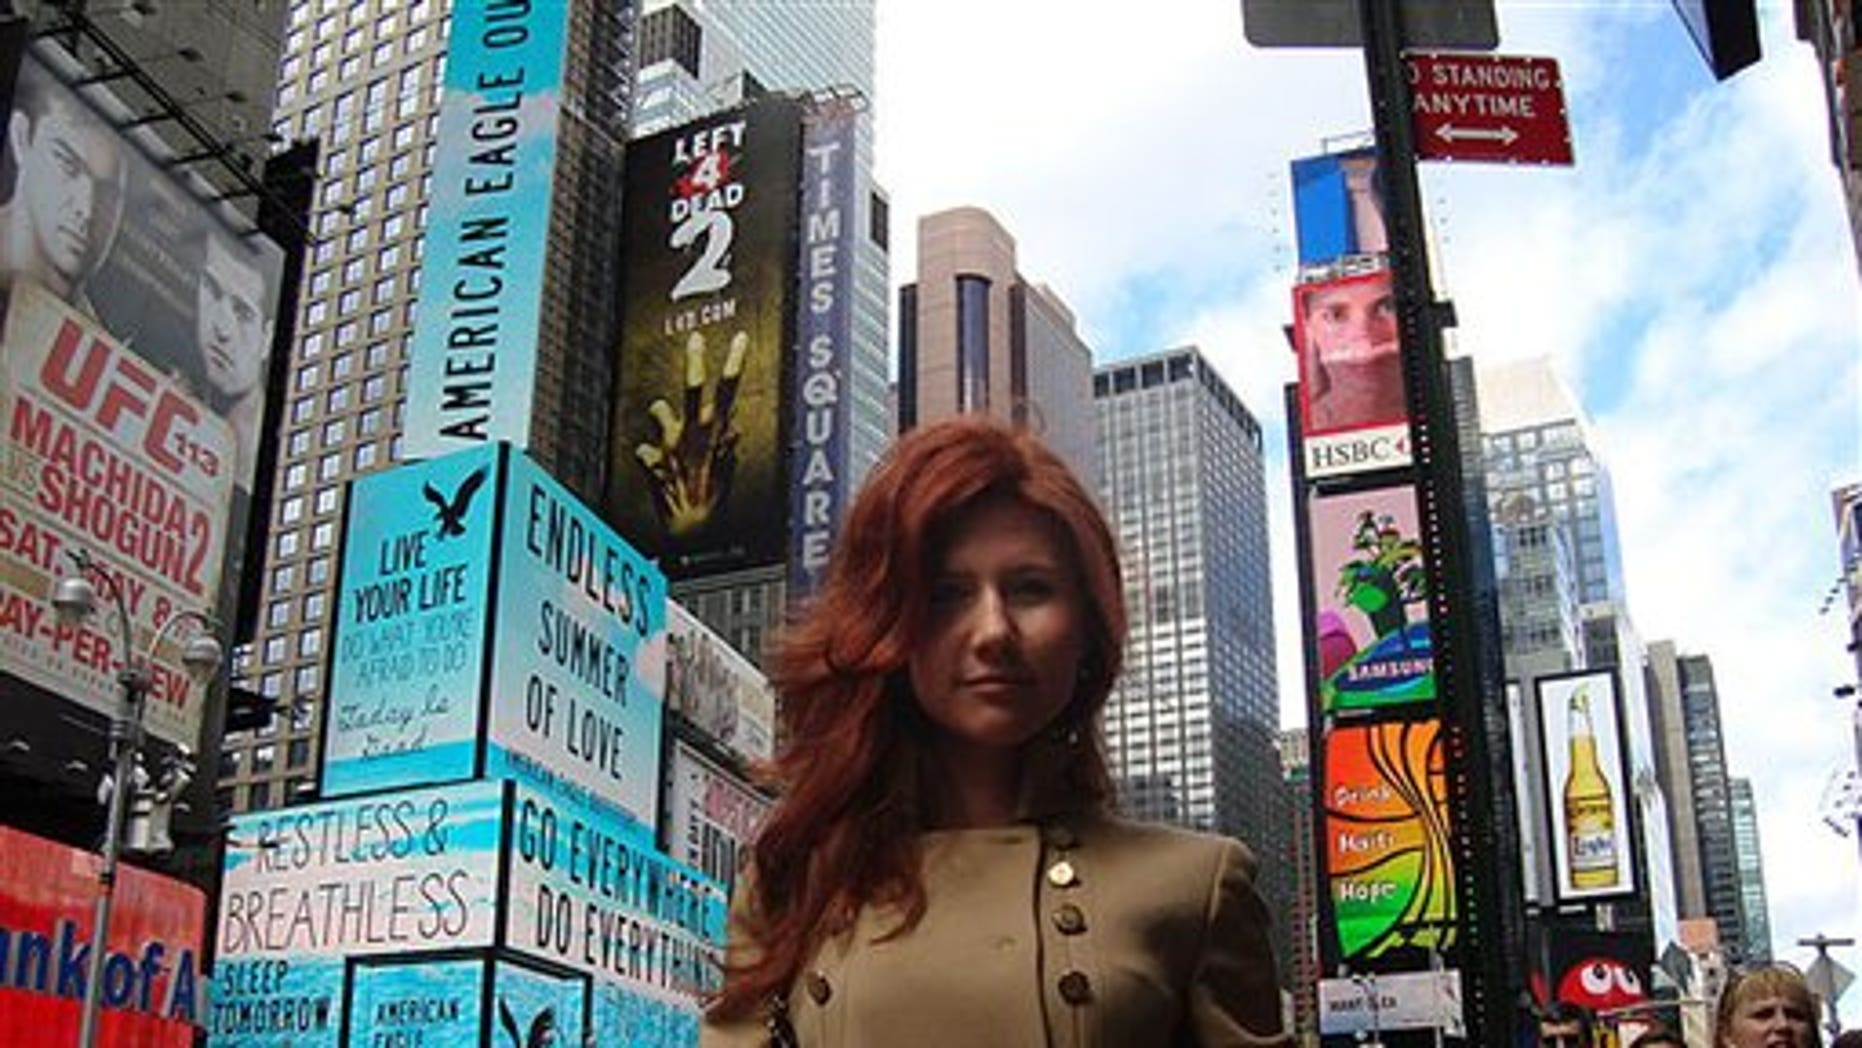 """This undated image taken from the Russian social networking website """"Odnoklassniki"""", or Classmates, shows a woman journalists have identified as Anna Chapman, who appeared at a hearing Monday, June 28, 2010 in New York federal court. Chapman, along with 10 others, was arrested on charges of conspiracy to act as an agent of a foreign government without notifying the U.S. attorney general. The caption on Odnoklassniki reads  """"Russia, Moscow. Left 4 dead???"""" (AP Photo)"""